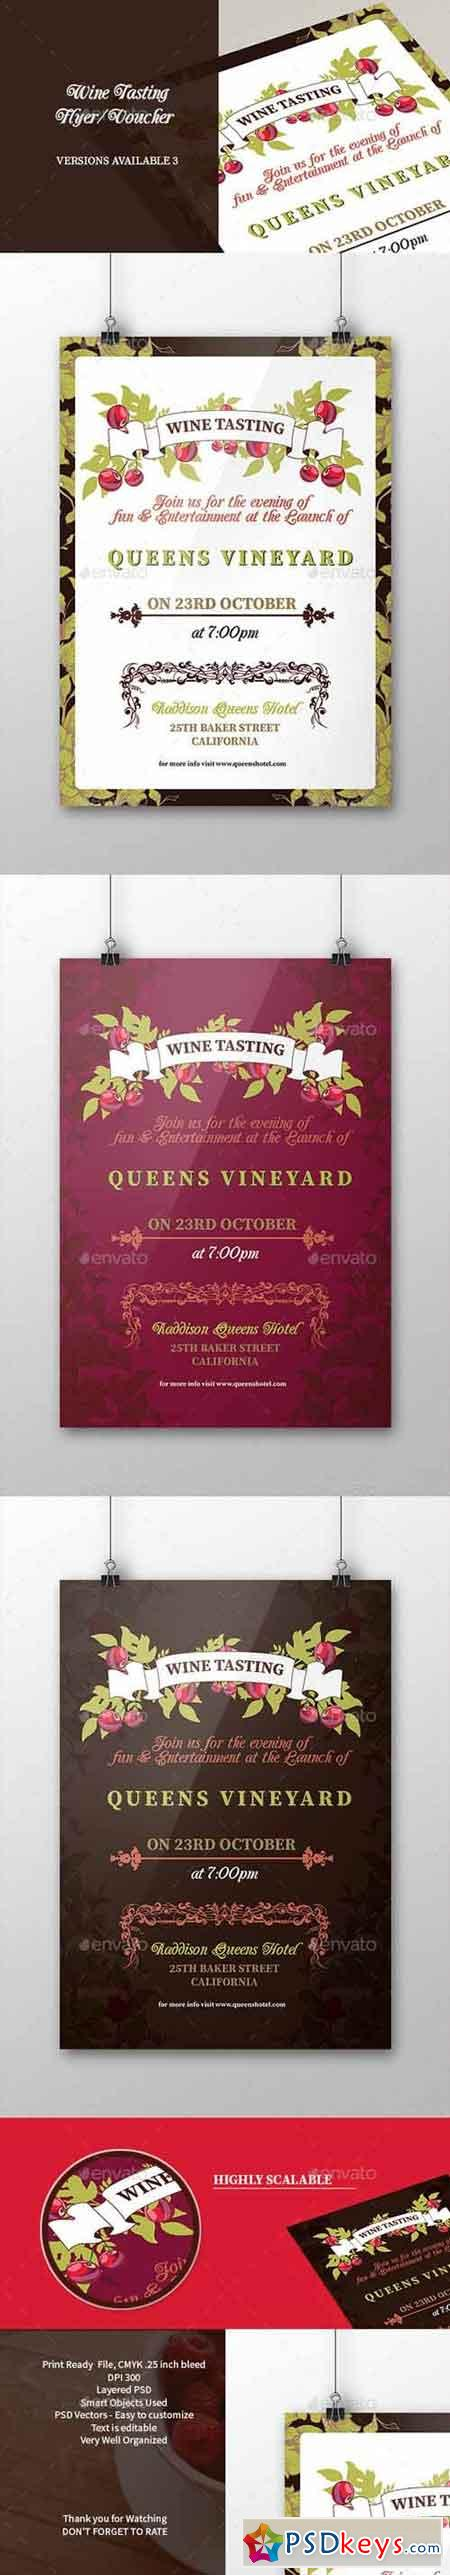 wine tasting flyer poster 12342130 free download photoshop vector stock image via torrent. Black Bedroom Furniture Sets. Home Design Ideas